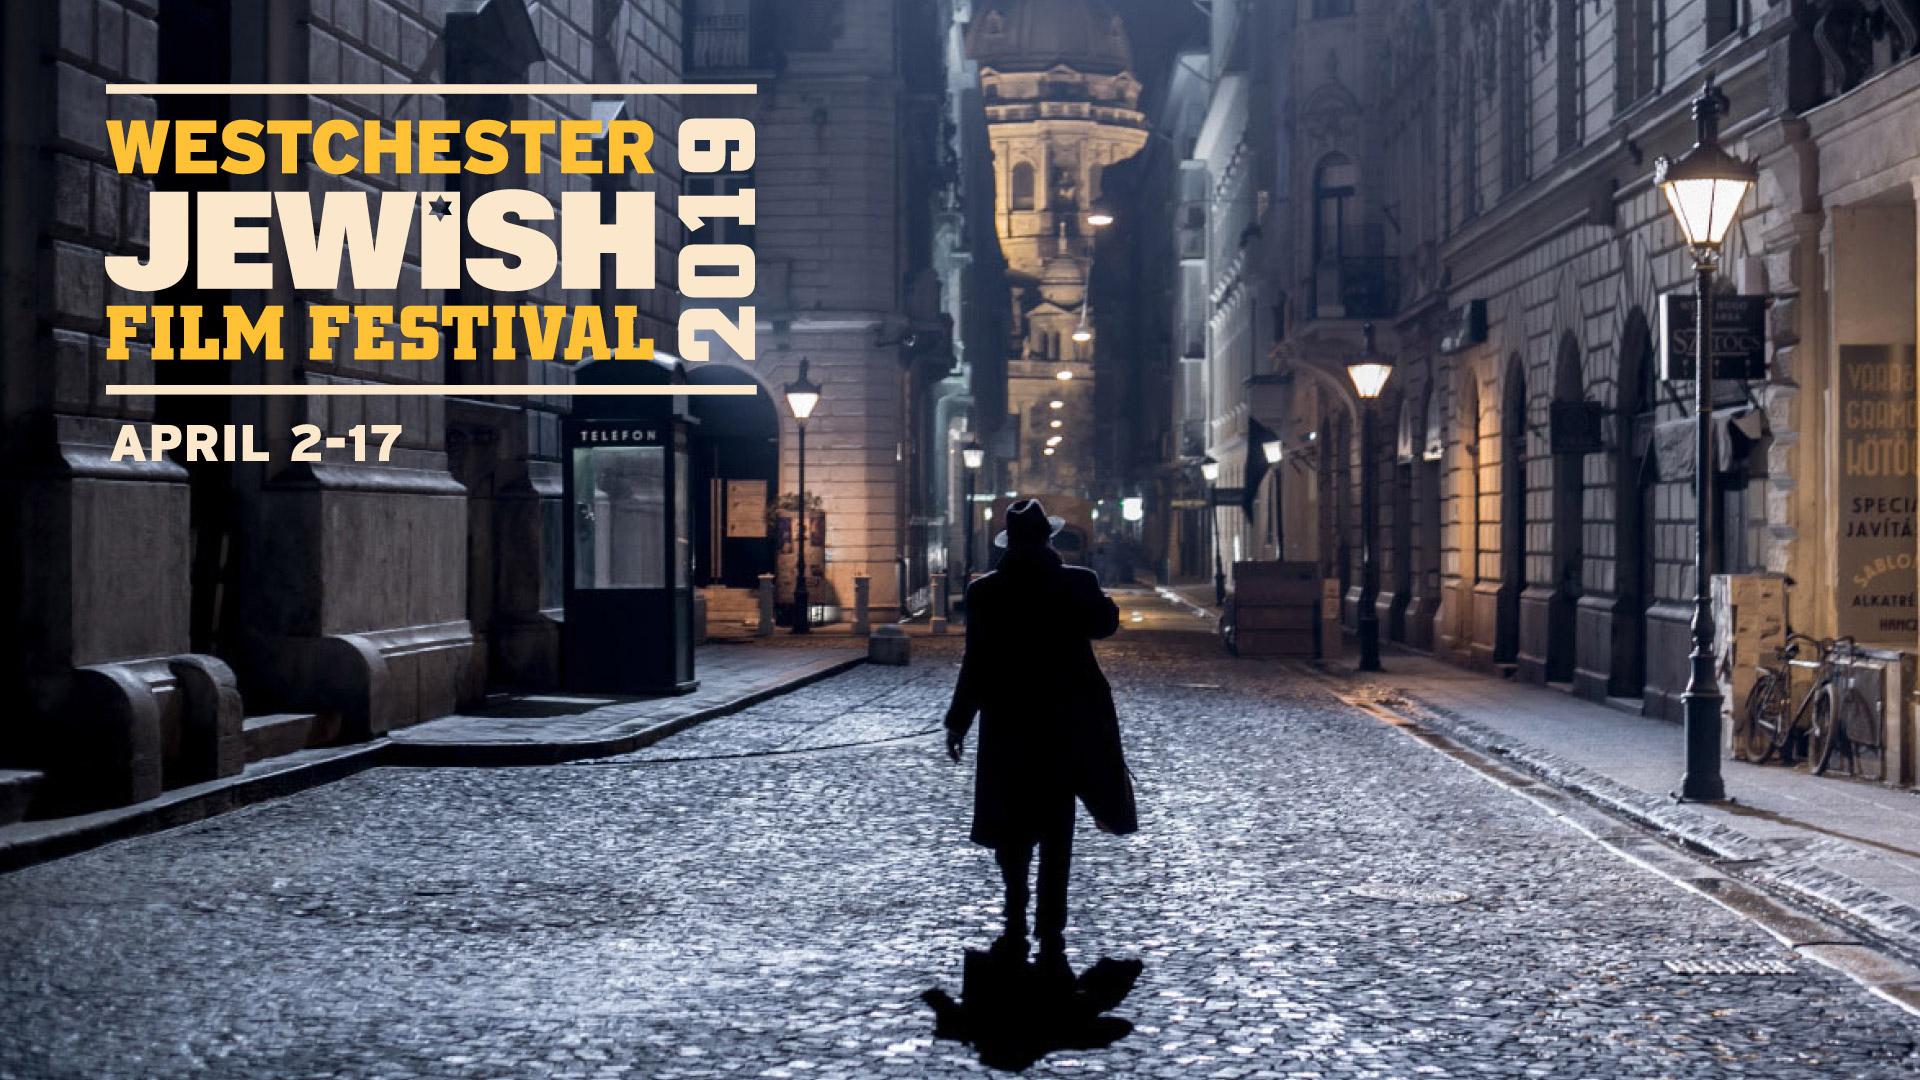 Jacob Burns Film Center Announces Lineup of Critically-Acclaimed Films for the Highly-Anticipated 2019 Westchester Jewish Film Festival